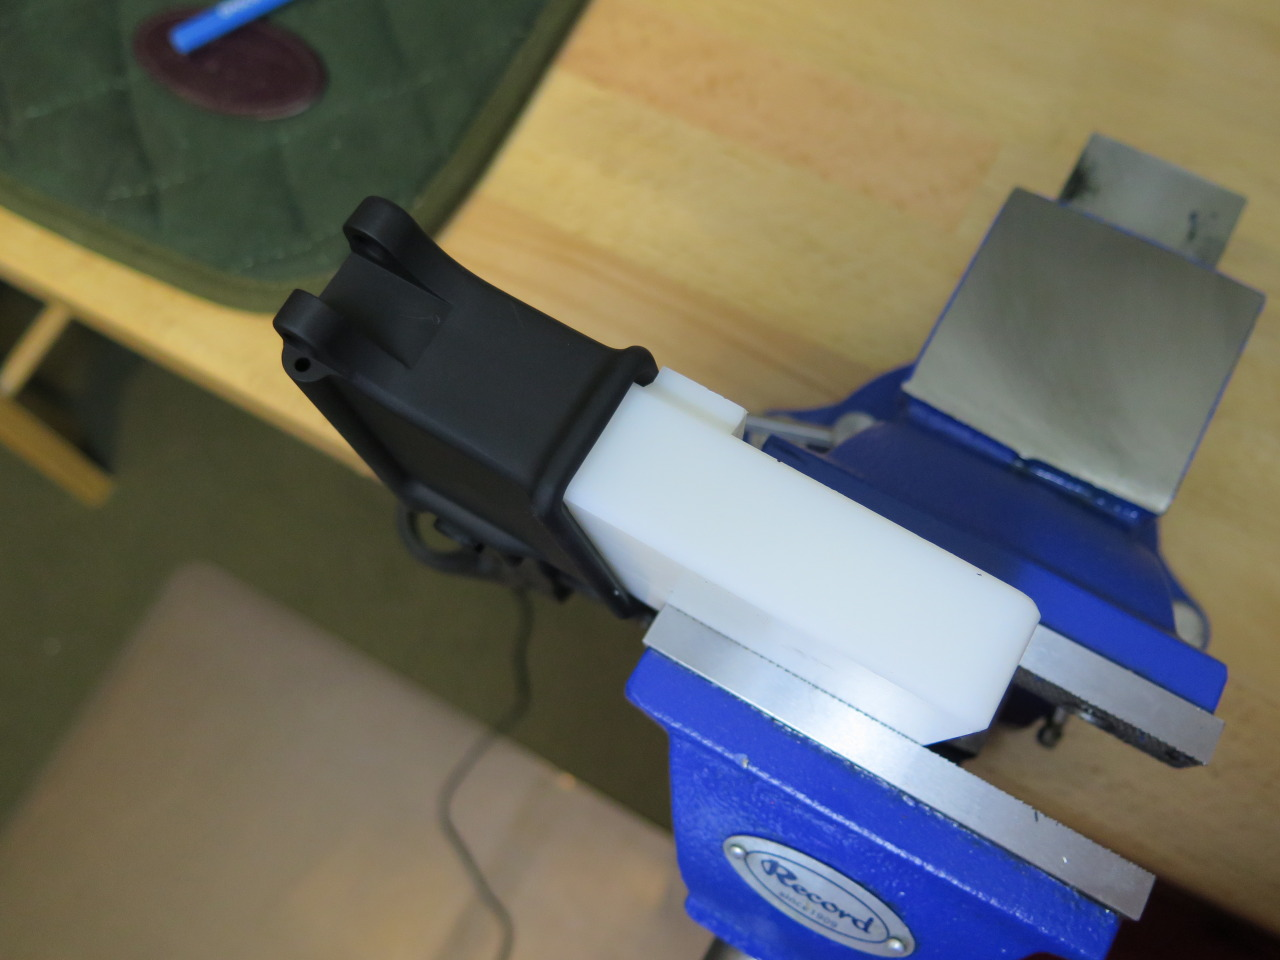 Rotate the Block in the Vise